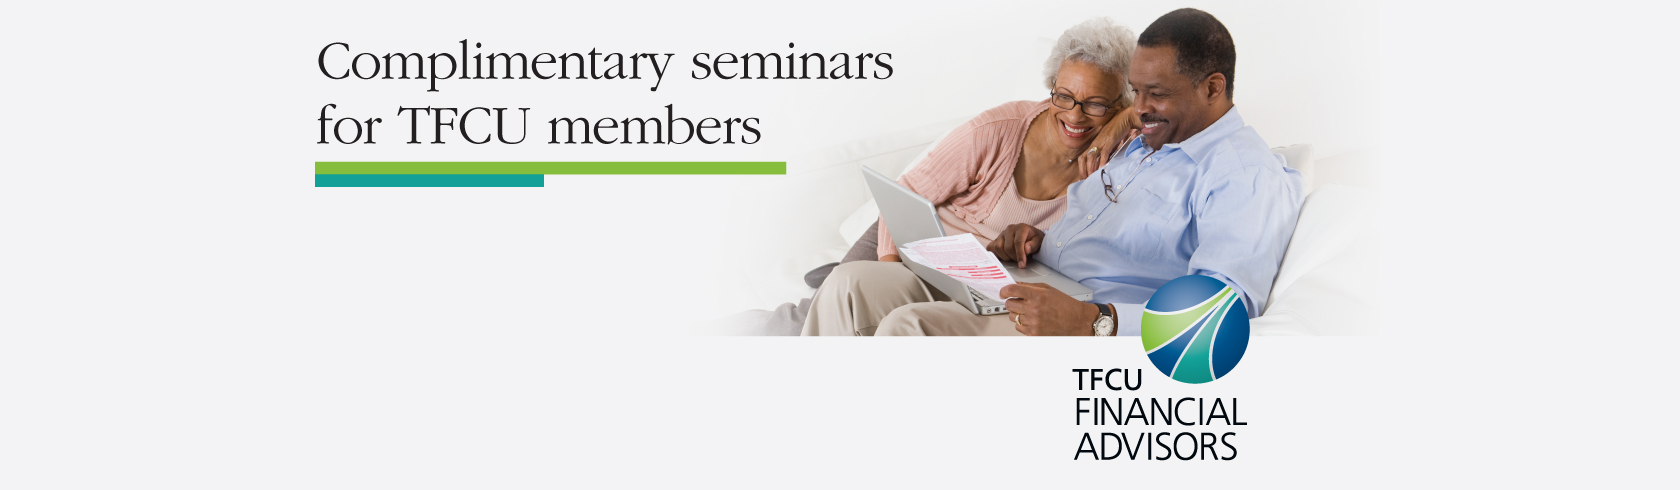 Complimentary seminars for TFCU members presented by TFCU Financial Advisors